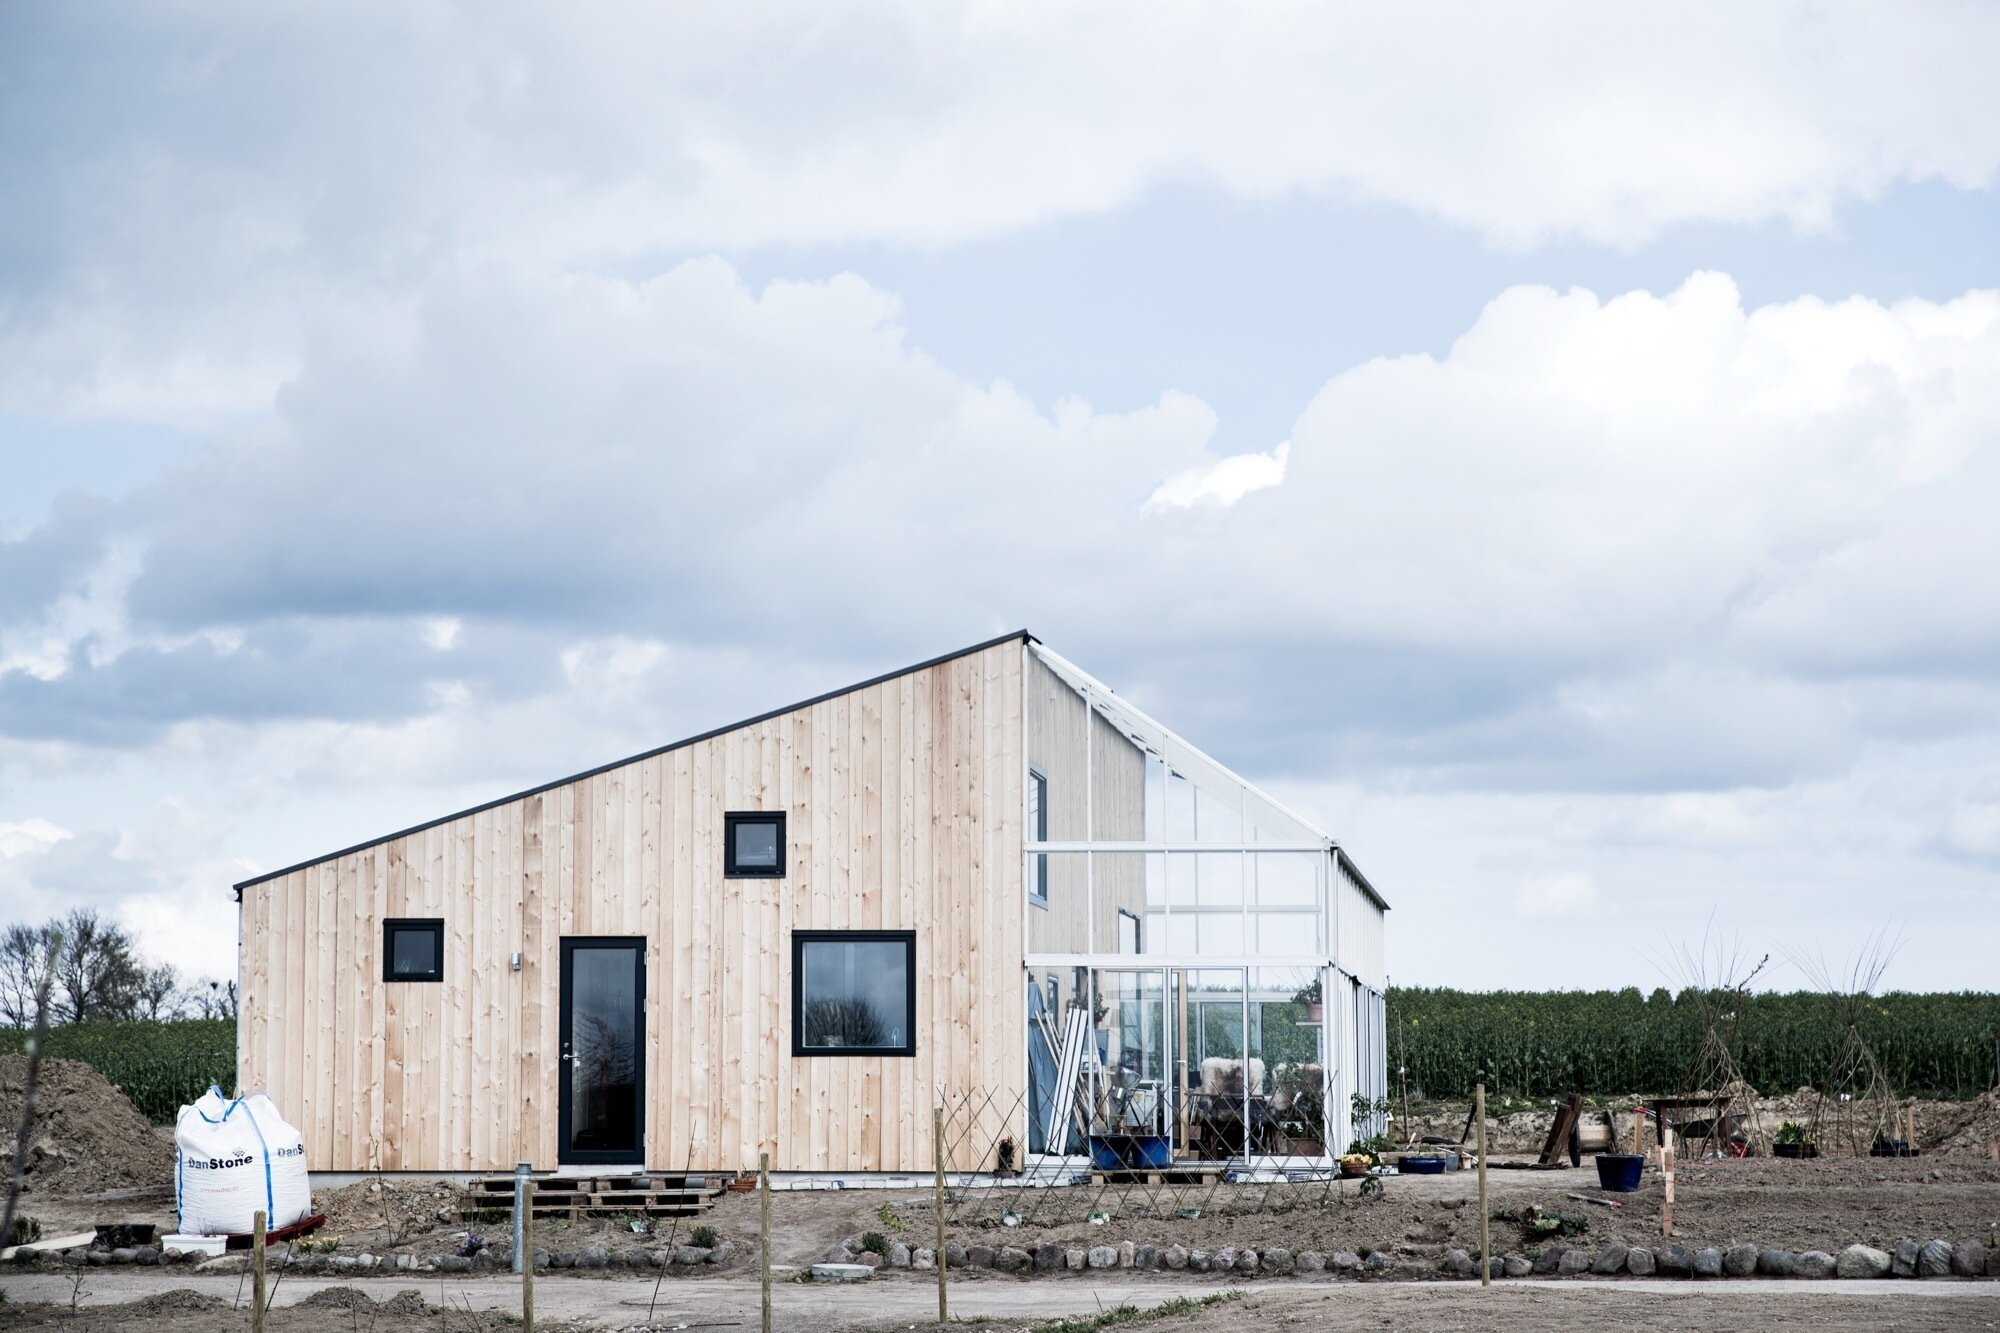 The Green House A Small Sustainable Home From Denmark By Sigurd Larsen